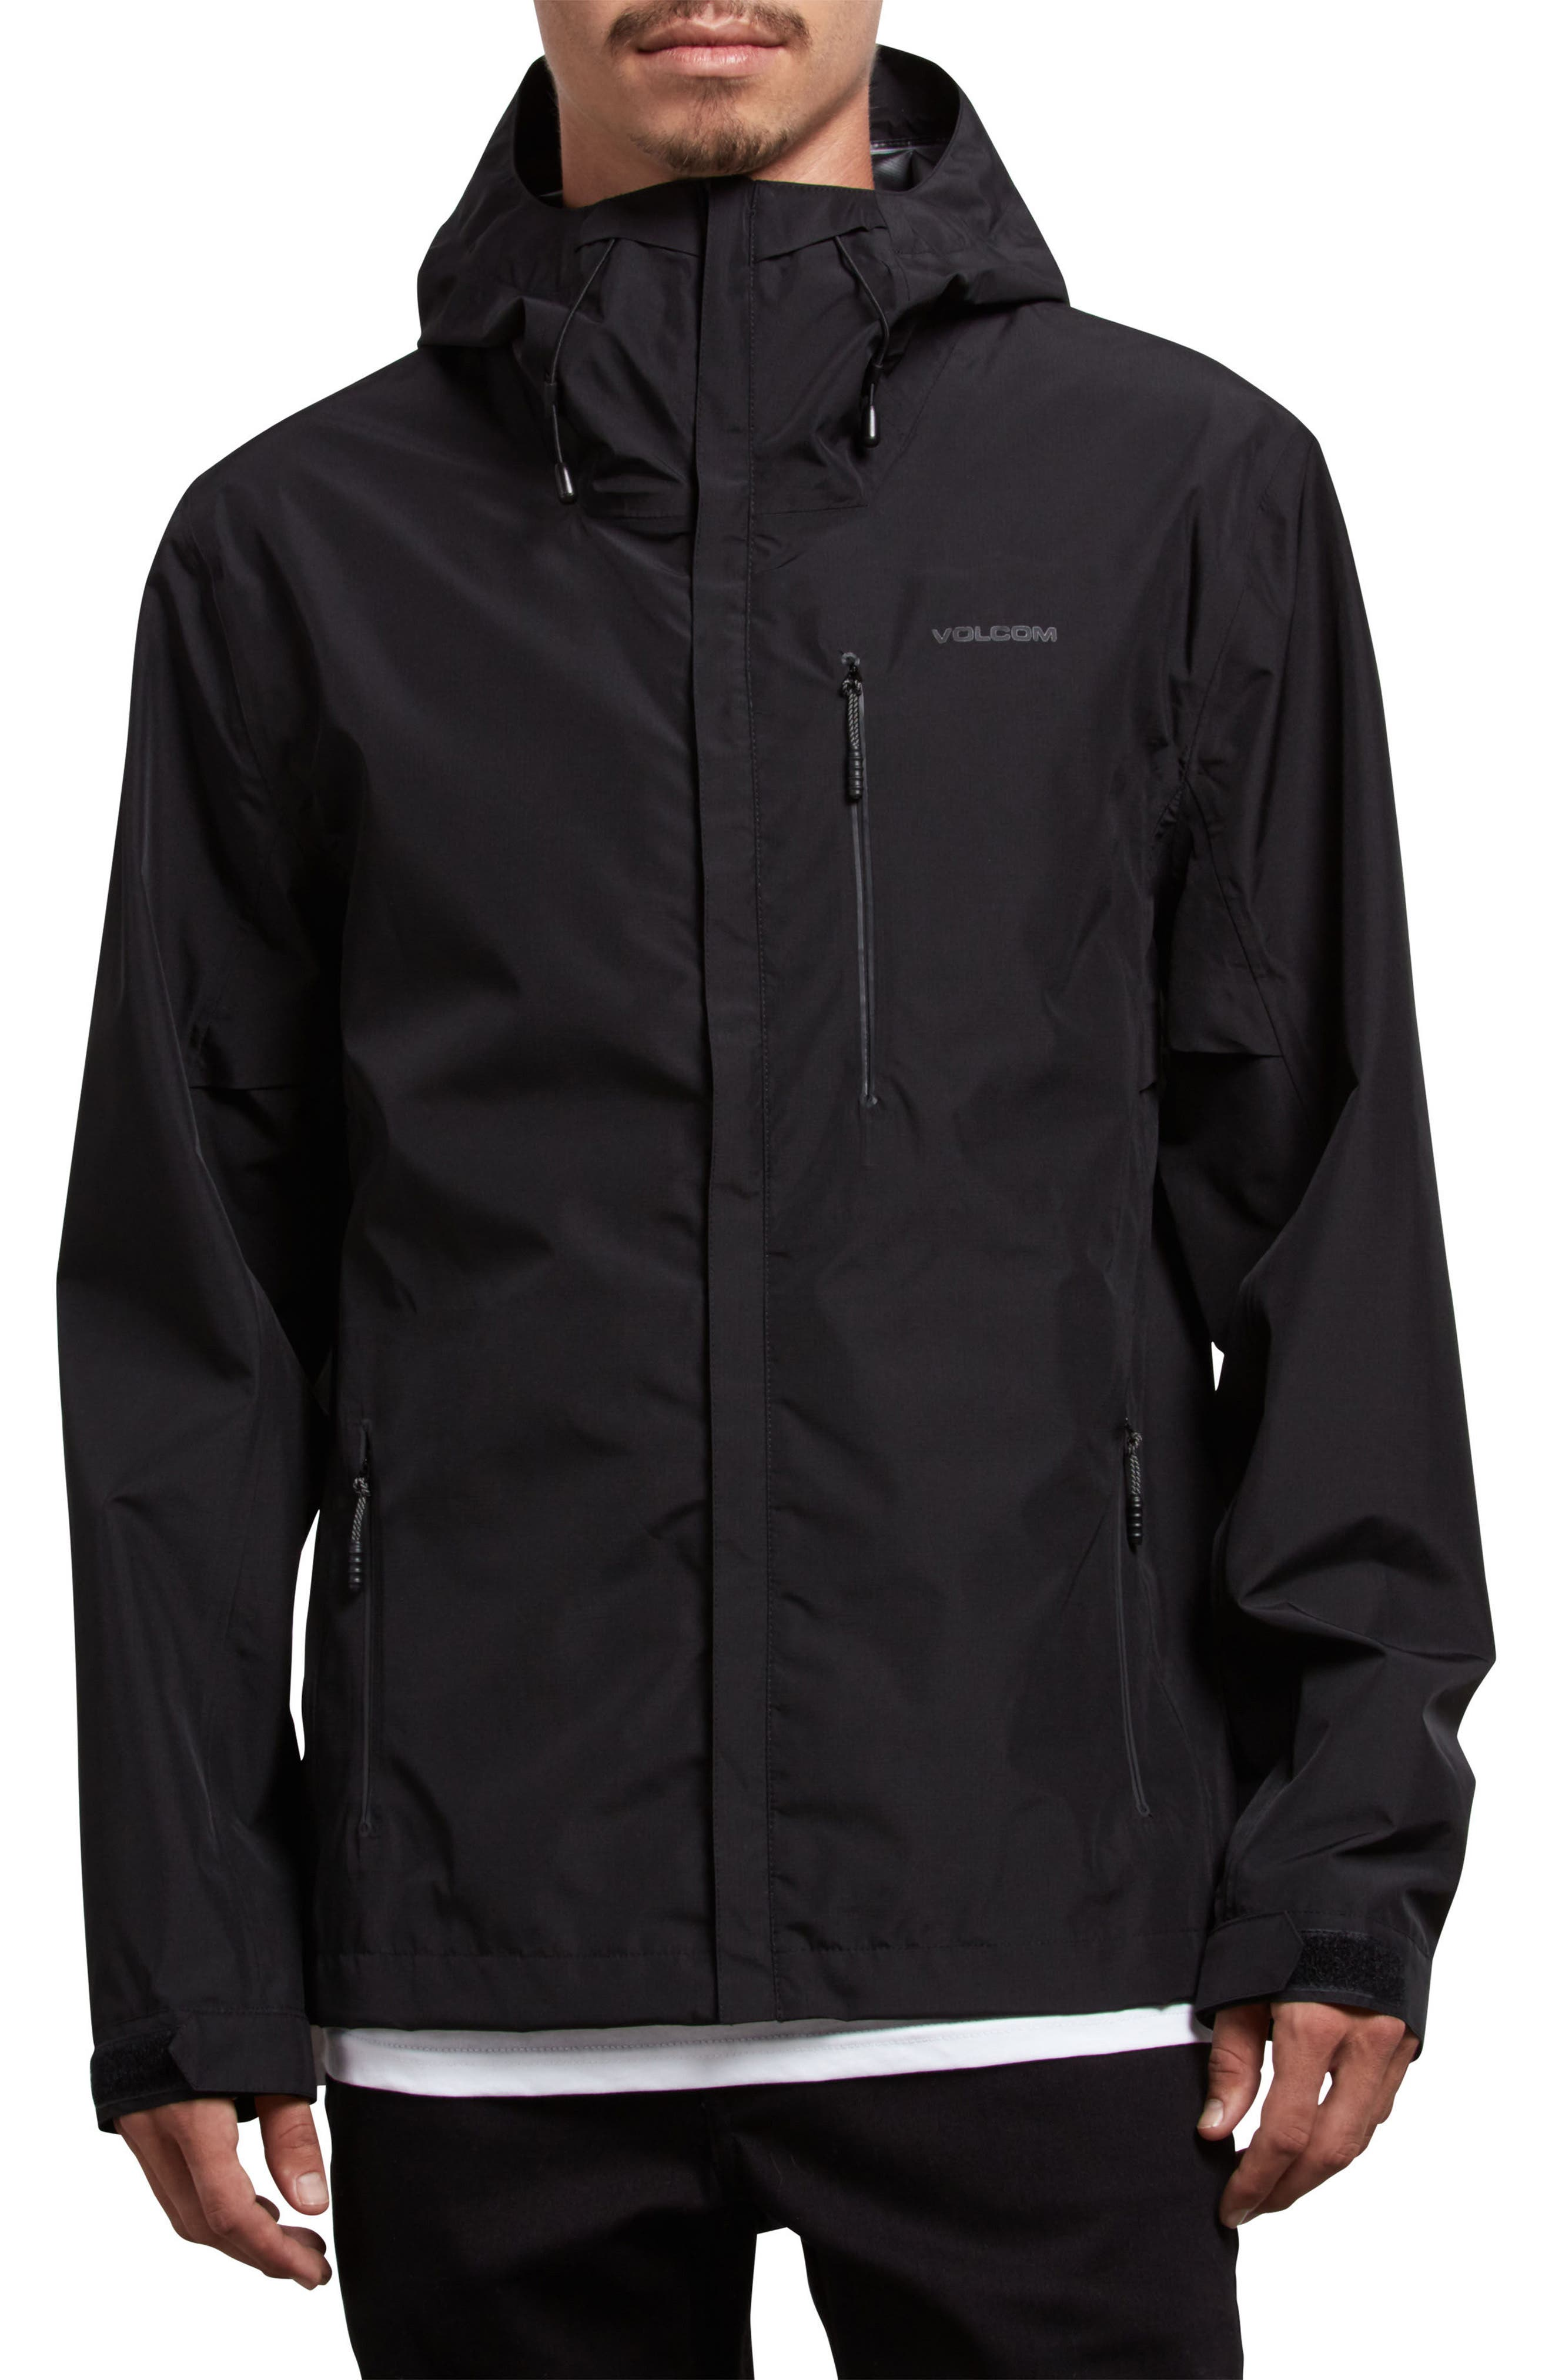 Stone Storm Jacket,                         Main,                         color, Black